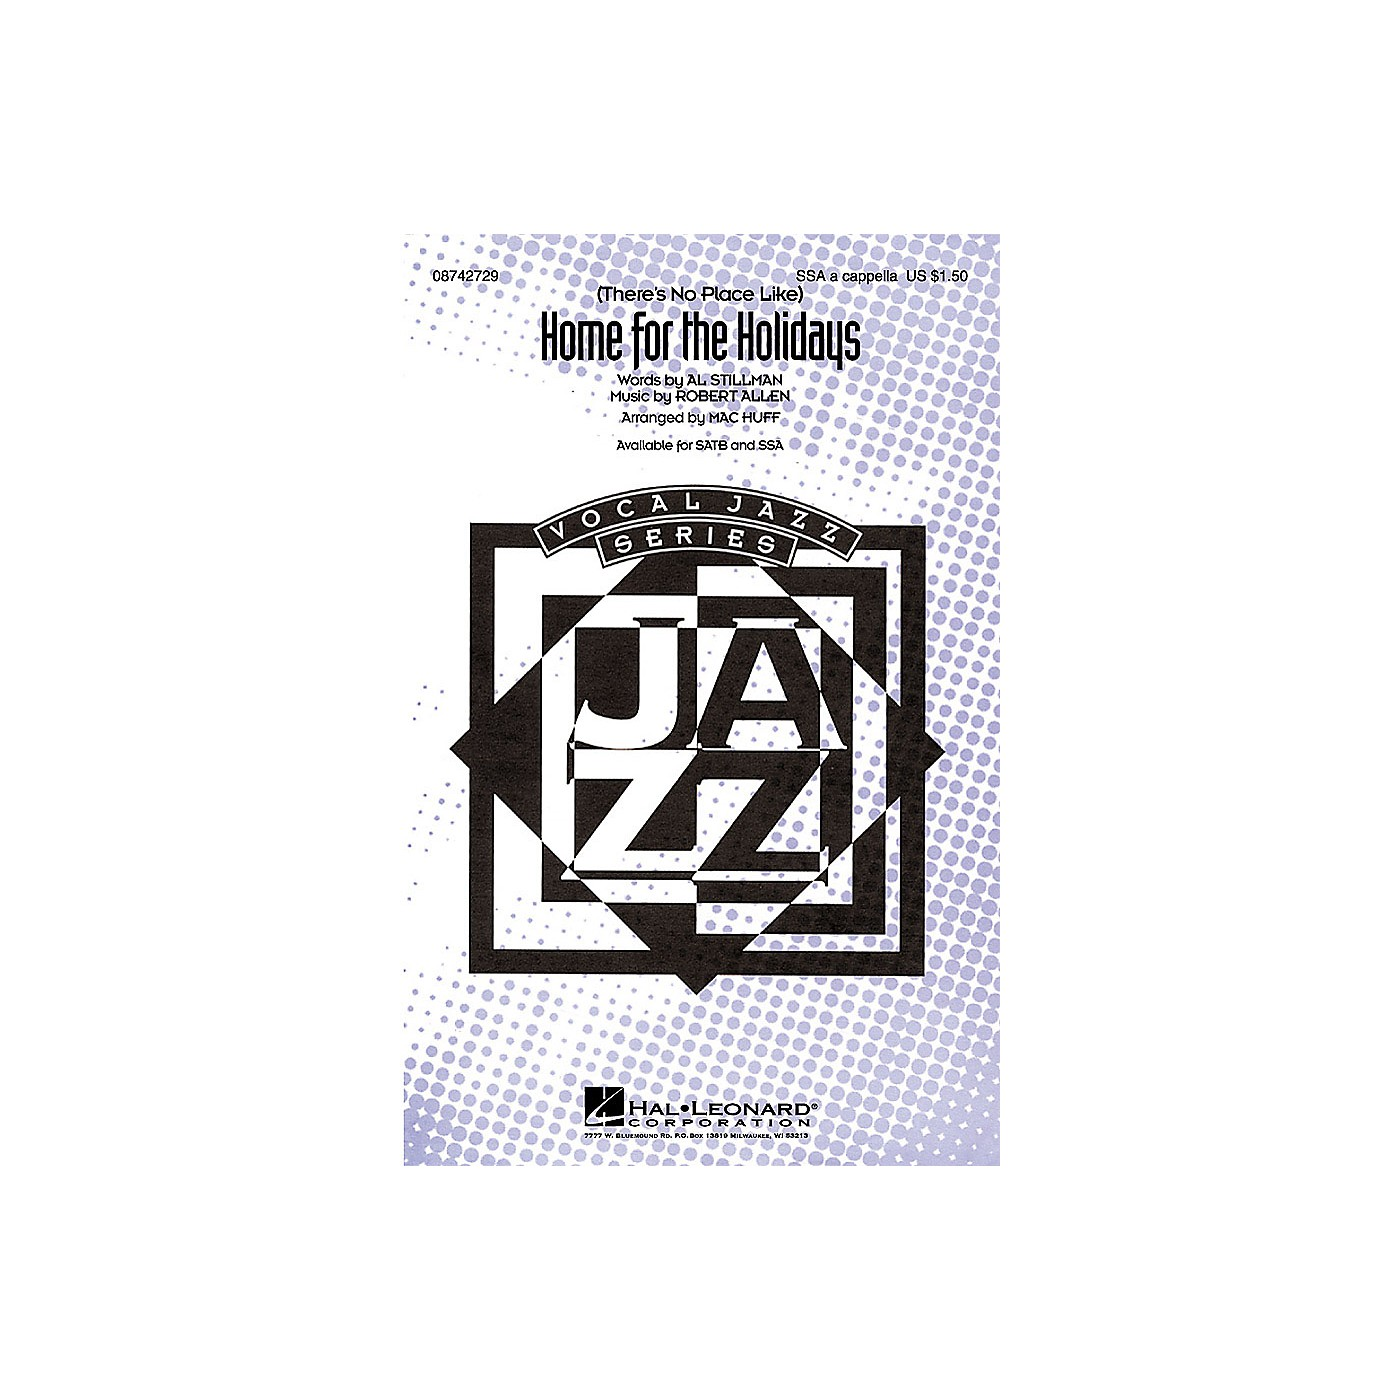 Hal Leonard (There's No Place Like) Home for the Holidays SSA A Cappella arranged by Mac Huff thumbnail